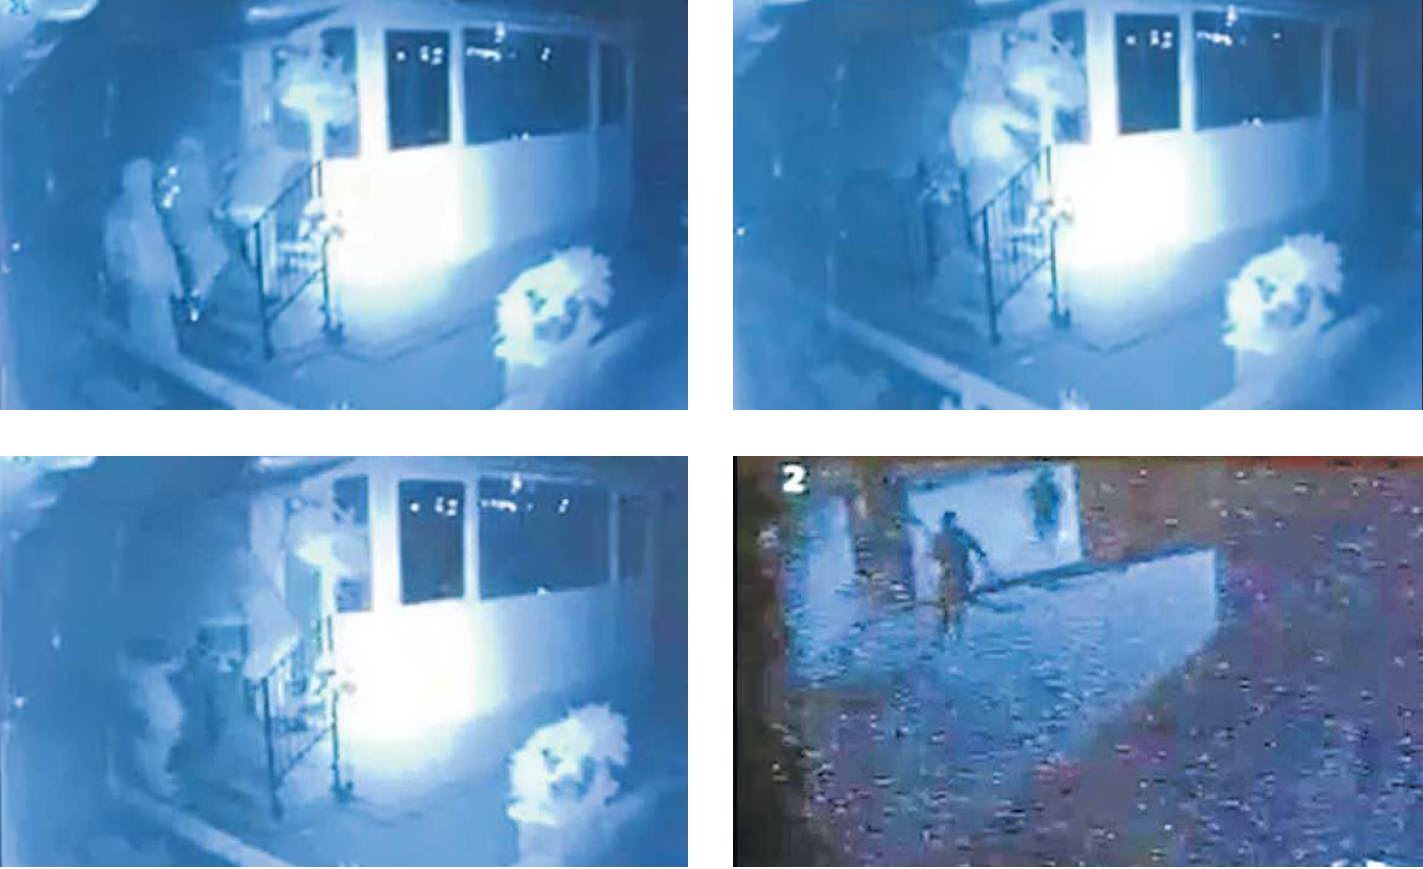 CCTV shows the three thieves entering the home then running out after being chased by someone inside.